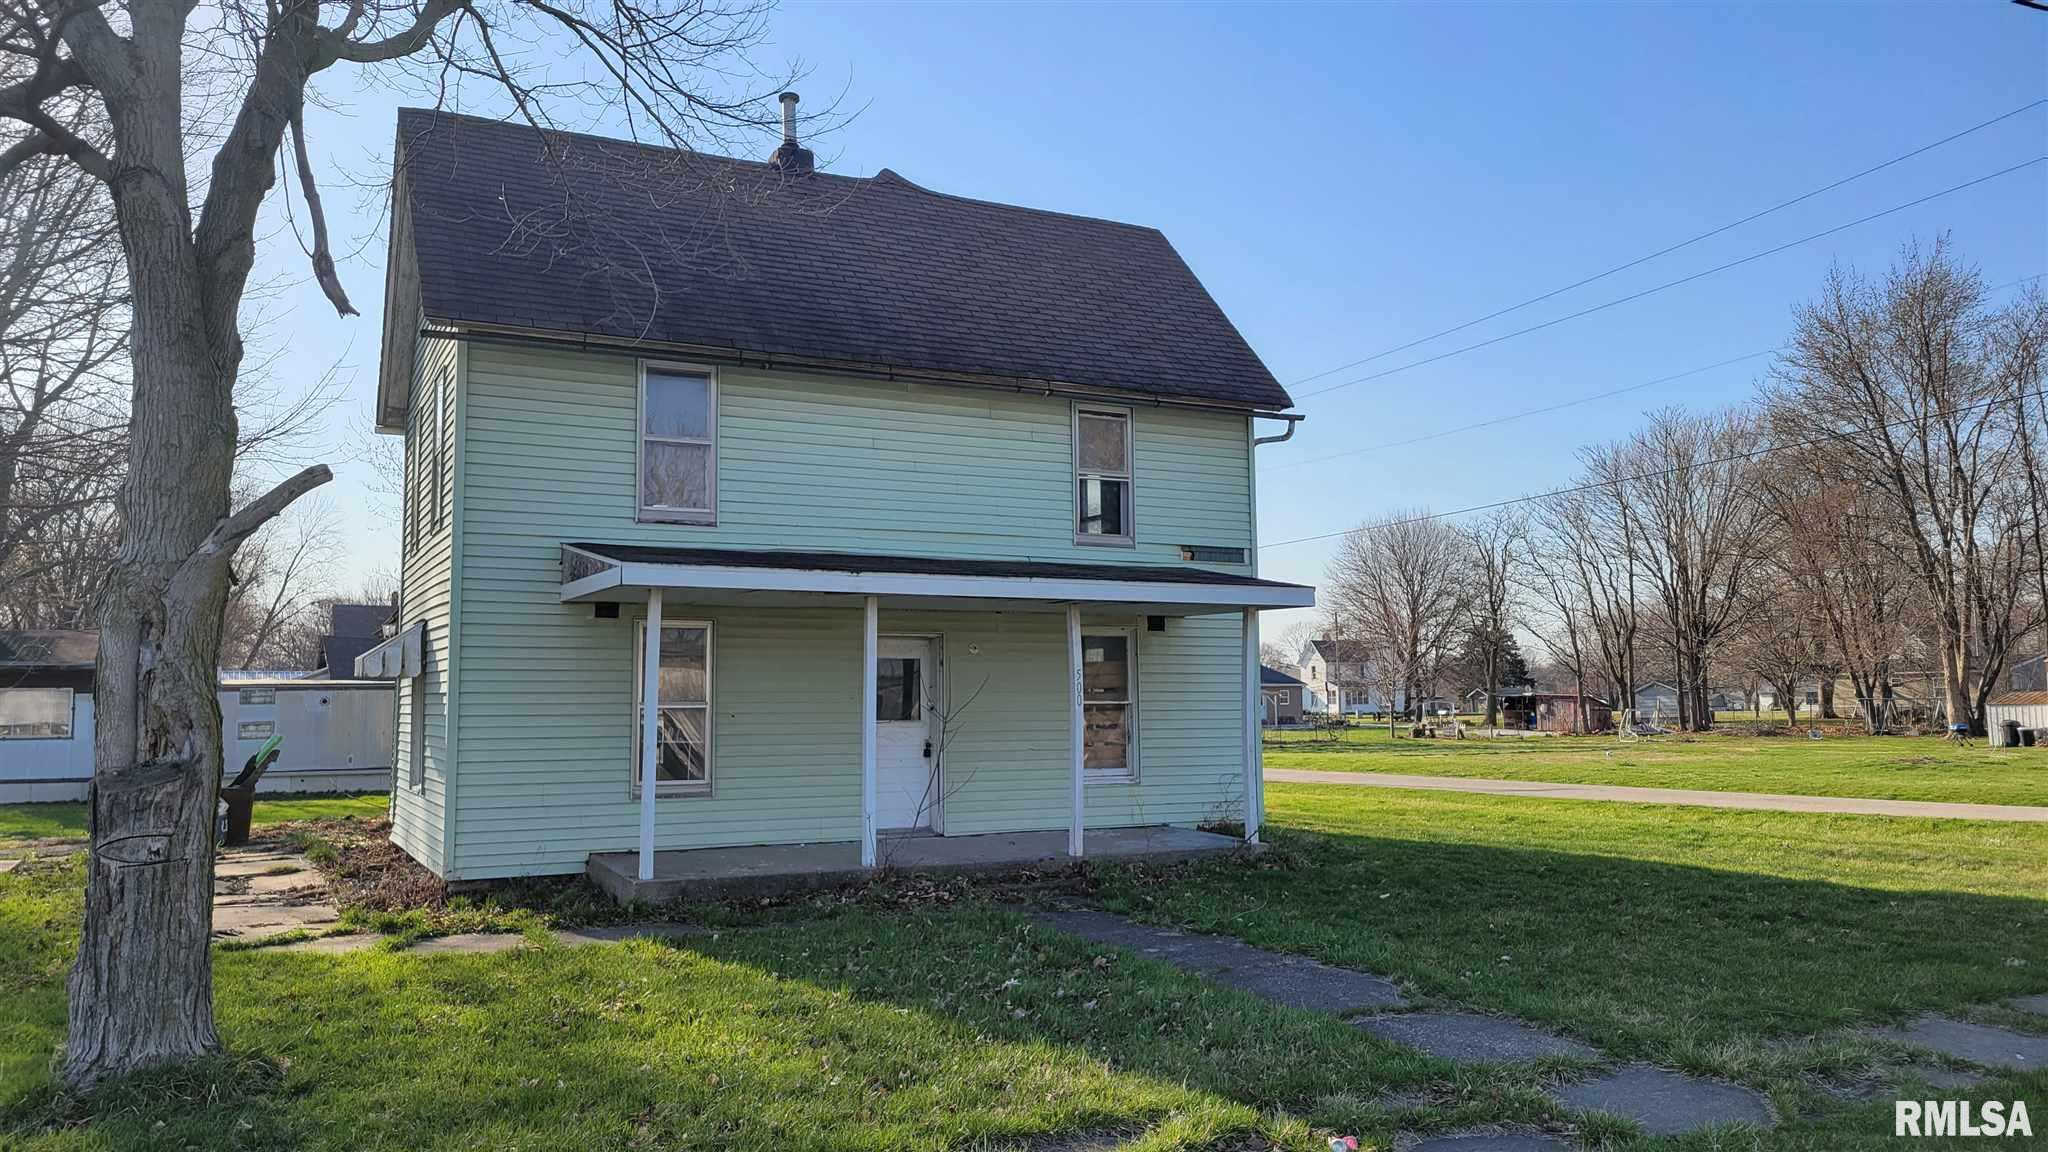 500 S 1ST Property Photo - La Harpe, IL real estate listing